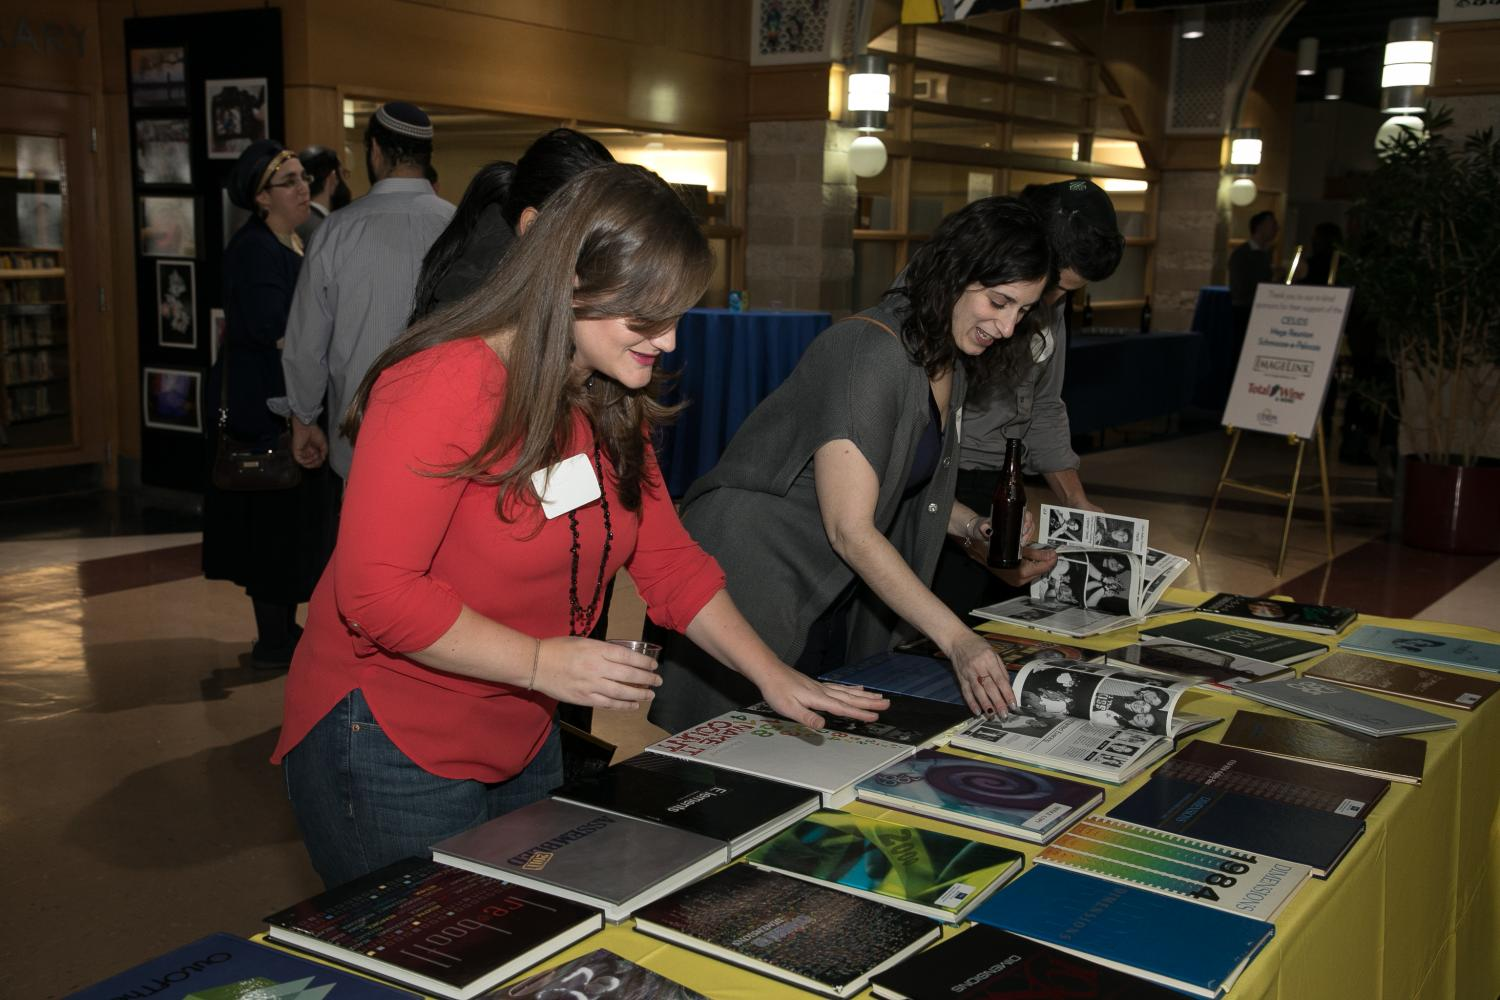 Alumni+browse+old+yearbooks+at+the+Upper+School+campus+at+a+February+reunion.